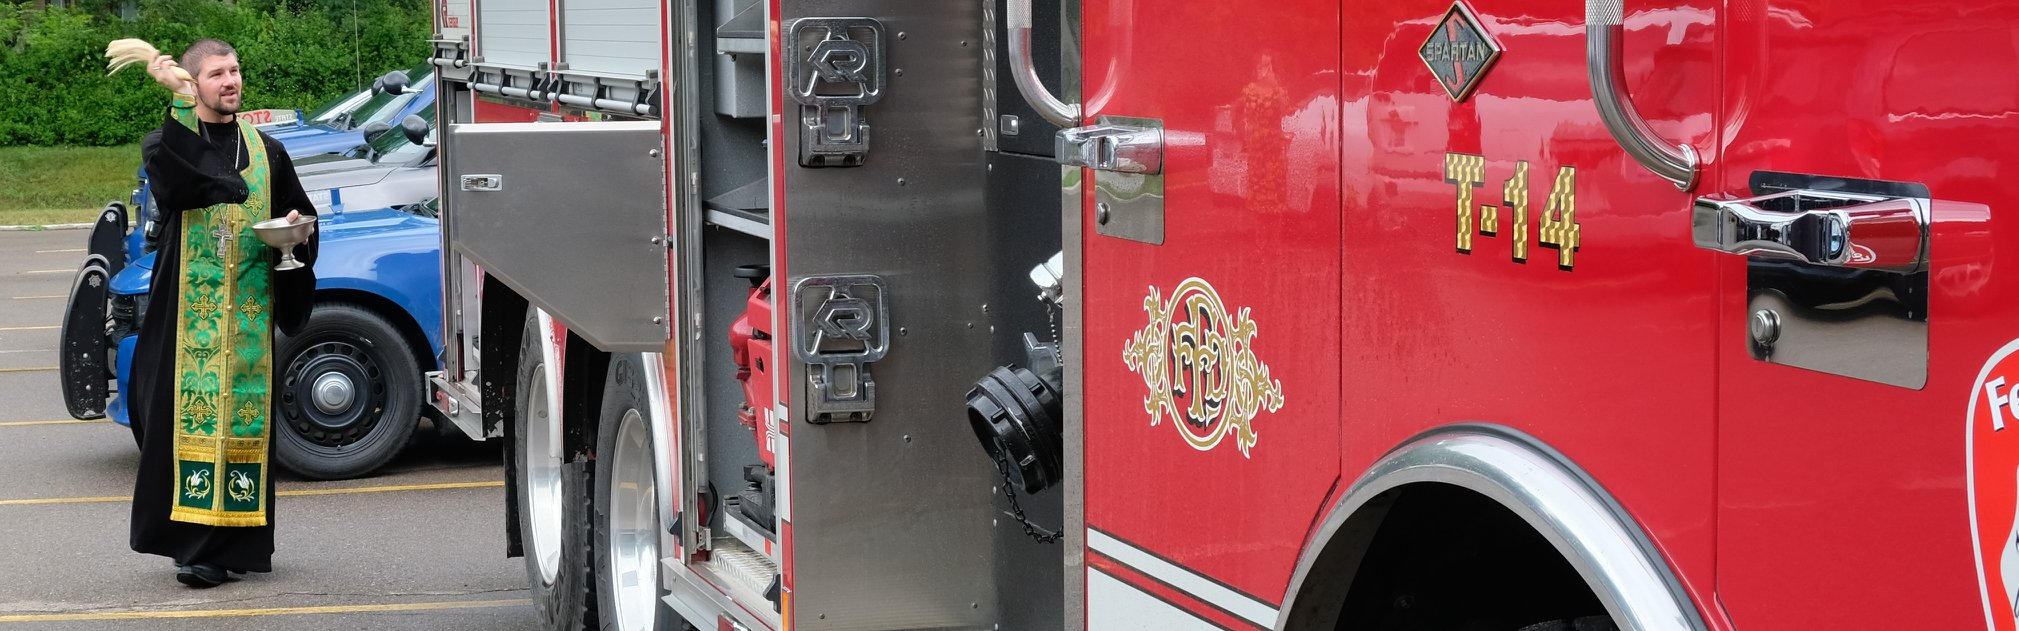 priest blessing fire truck panoramic